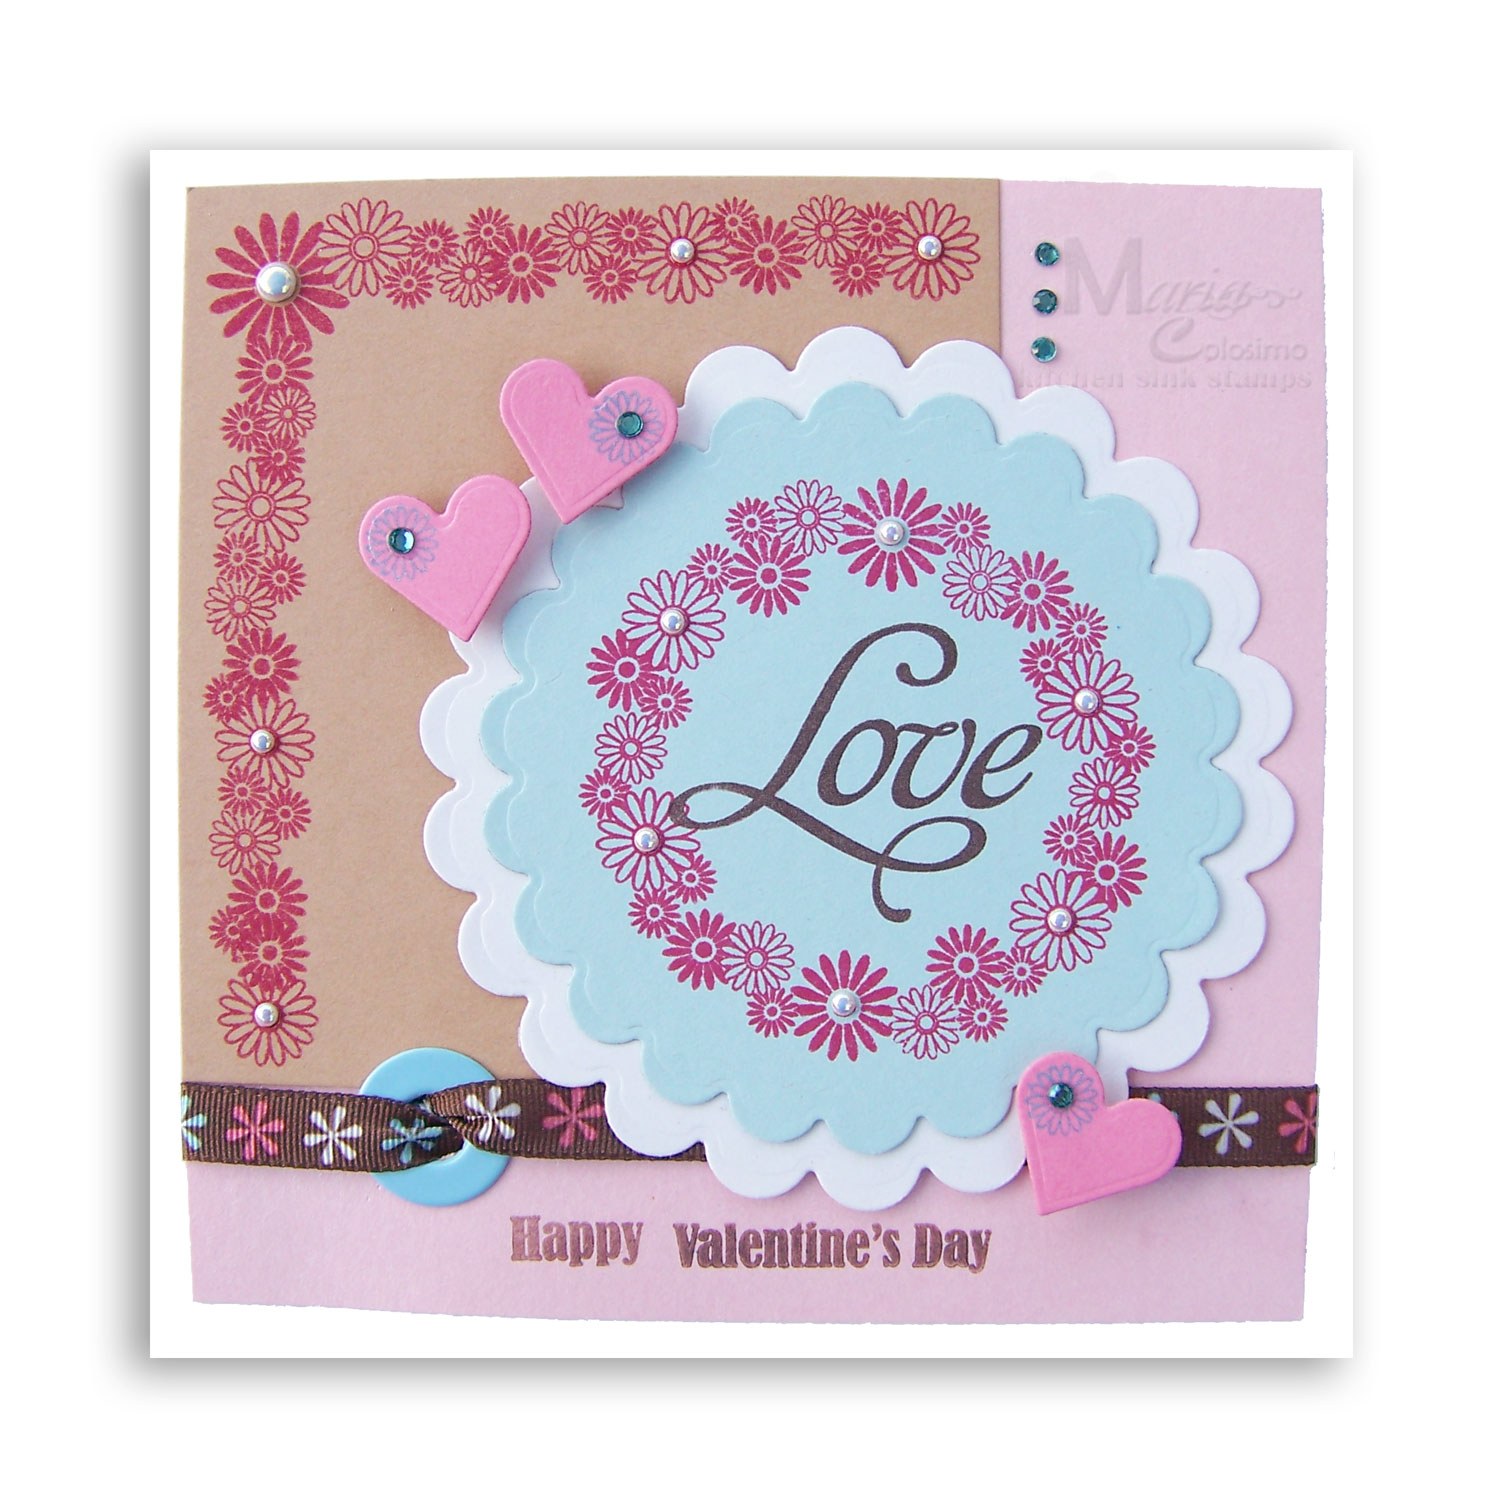 Photo cards romantic love cards for free crafts ideas crafts photo cards romantic love cards for free kristyandbryce Gallery